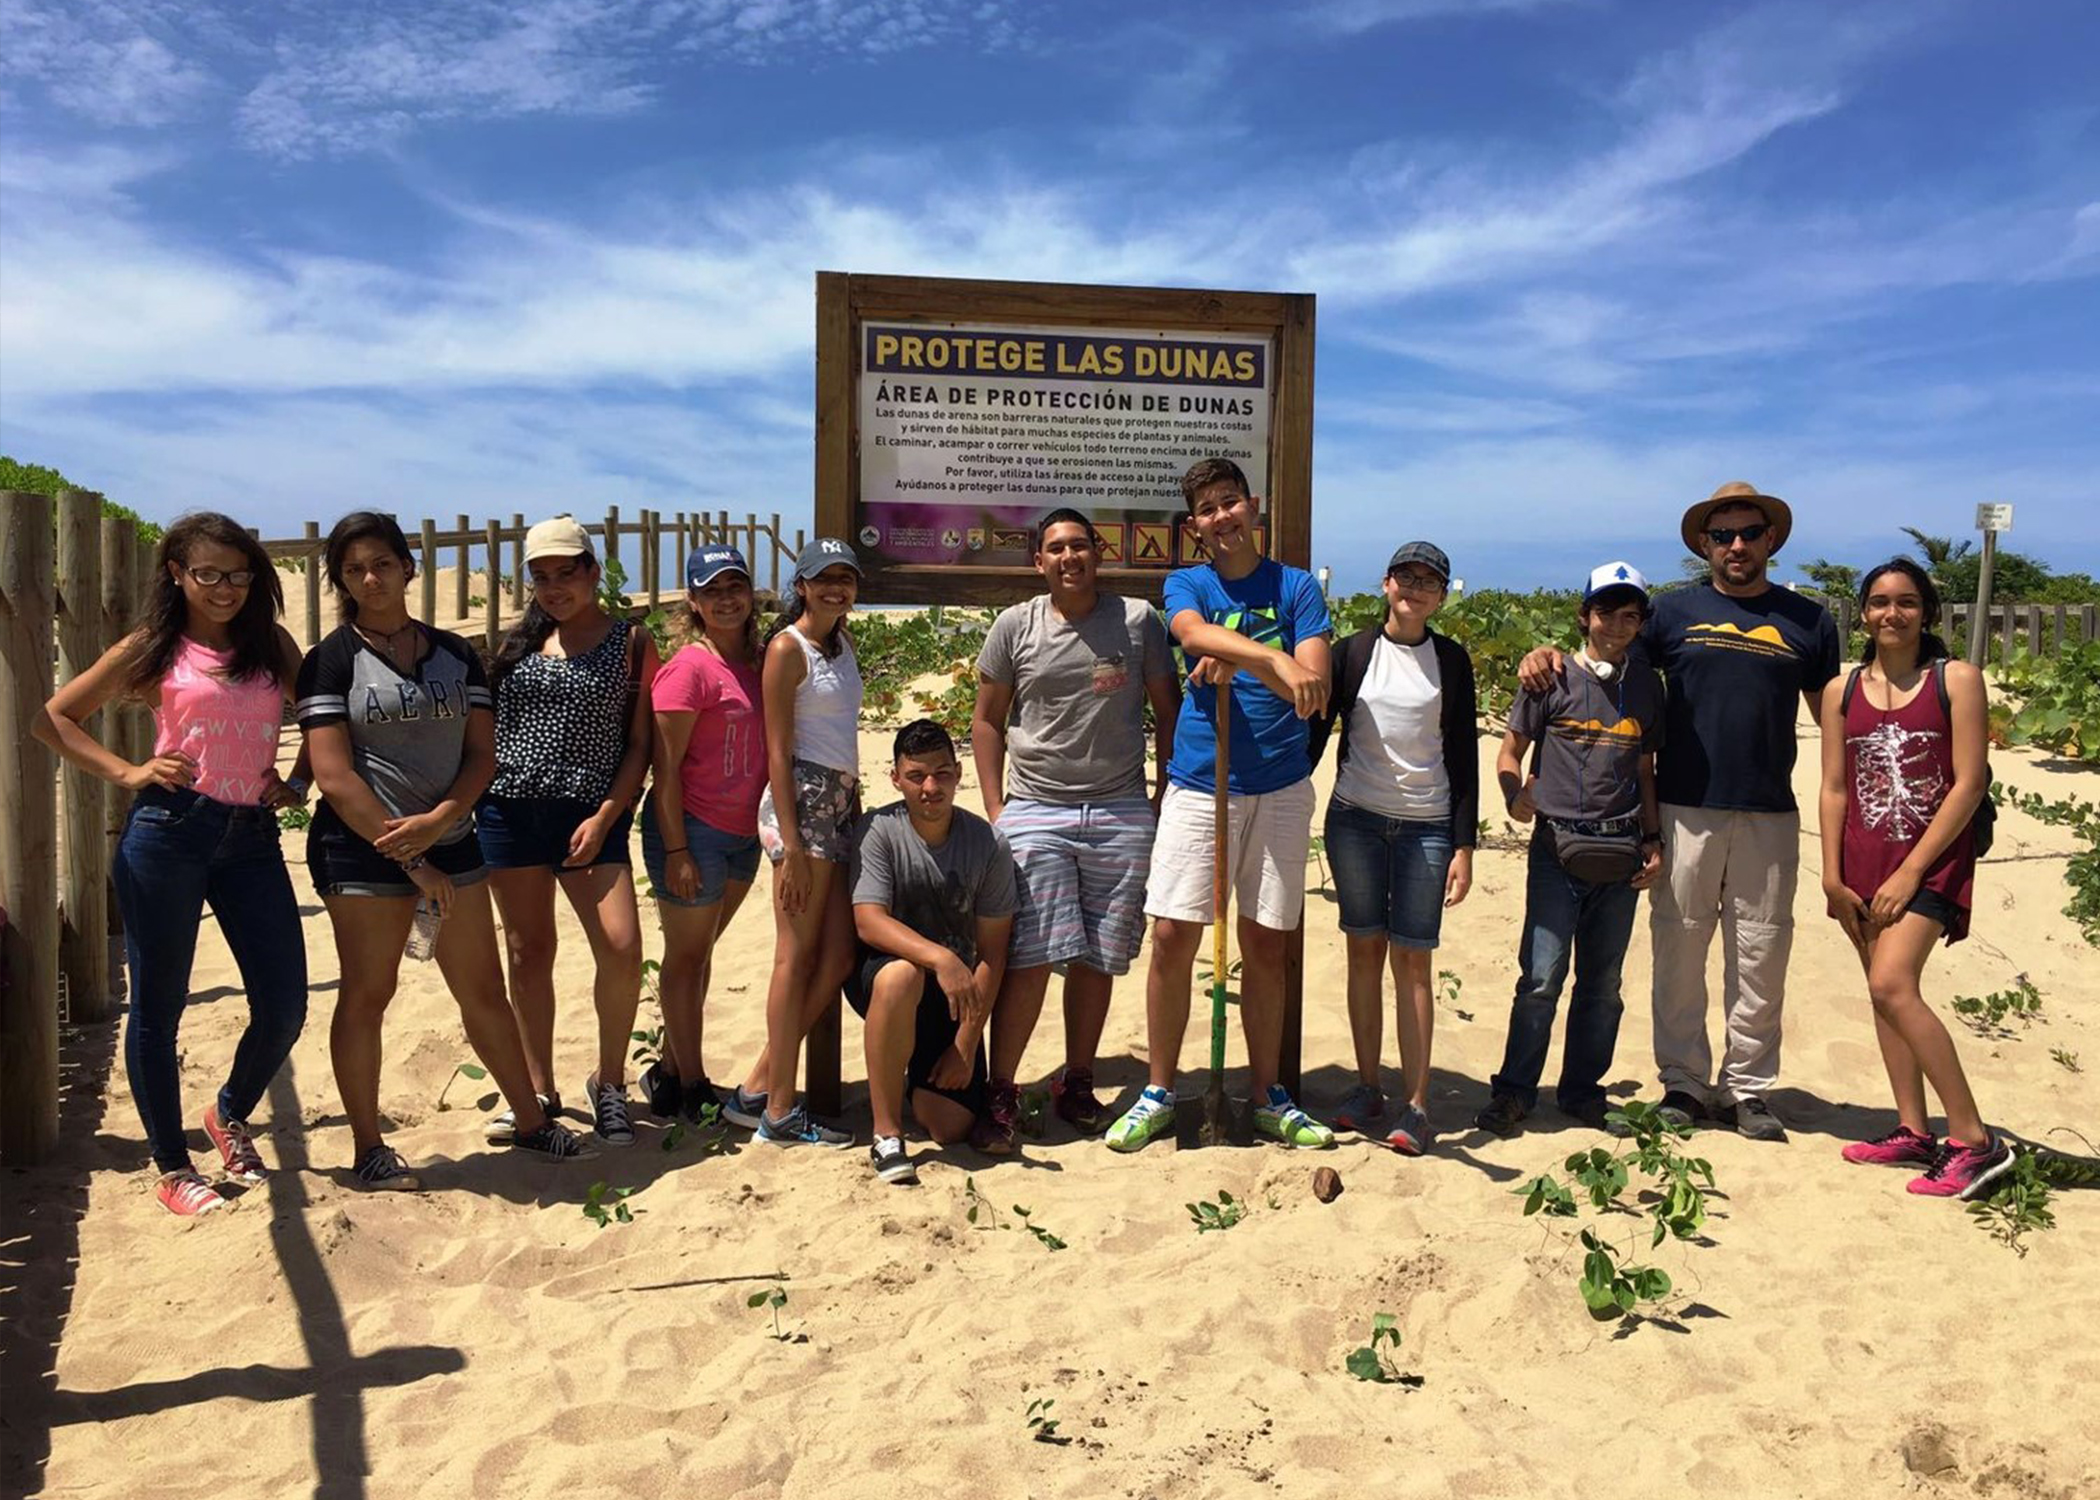 Volunteers at sign to educate beach users of importance of dune restoration projects to protect dune ecosystems in Puerto Rico.